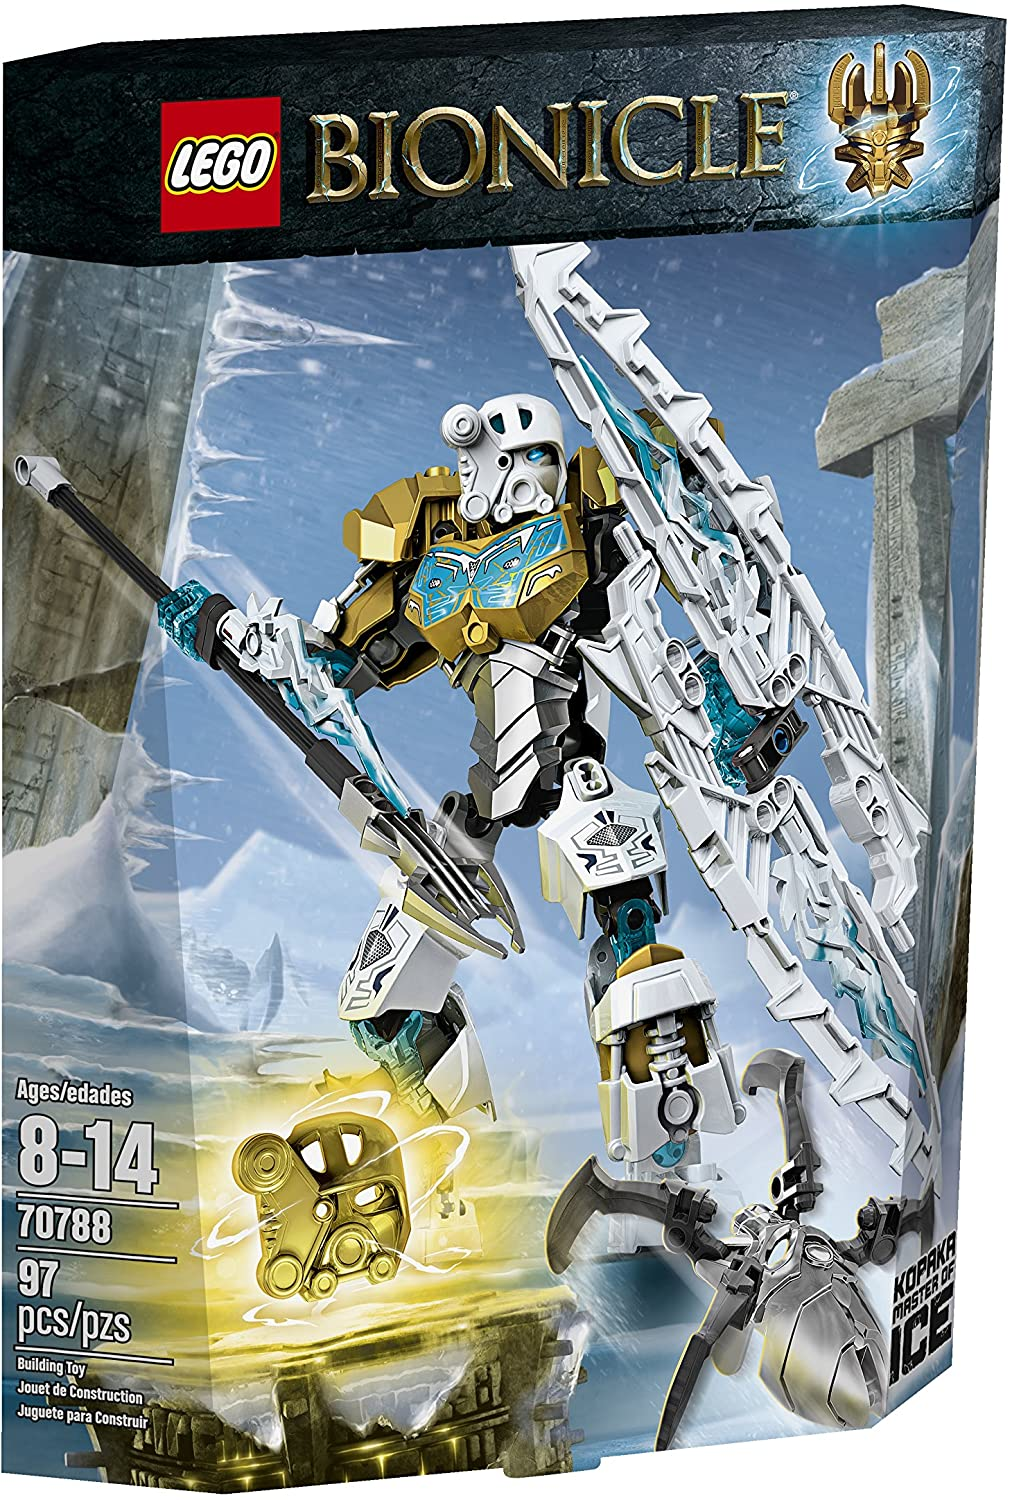 LEGO Bionicle Kopaka - Master of Ice Toy (70788), (Discontinued by manufacturer)